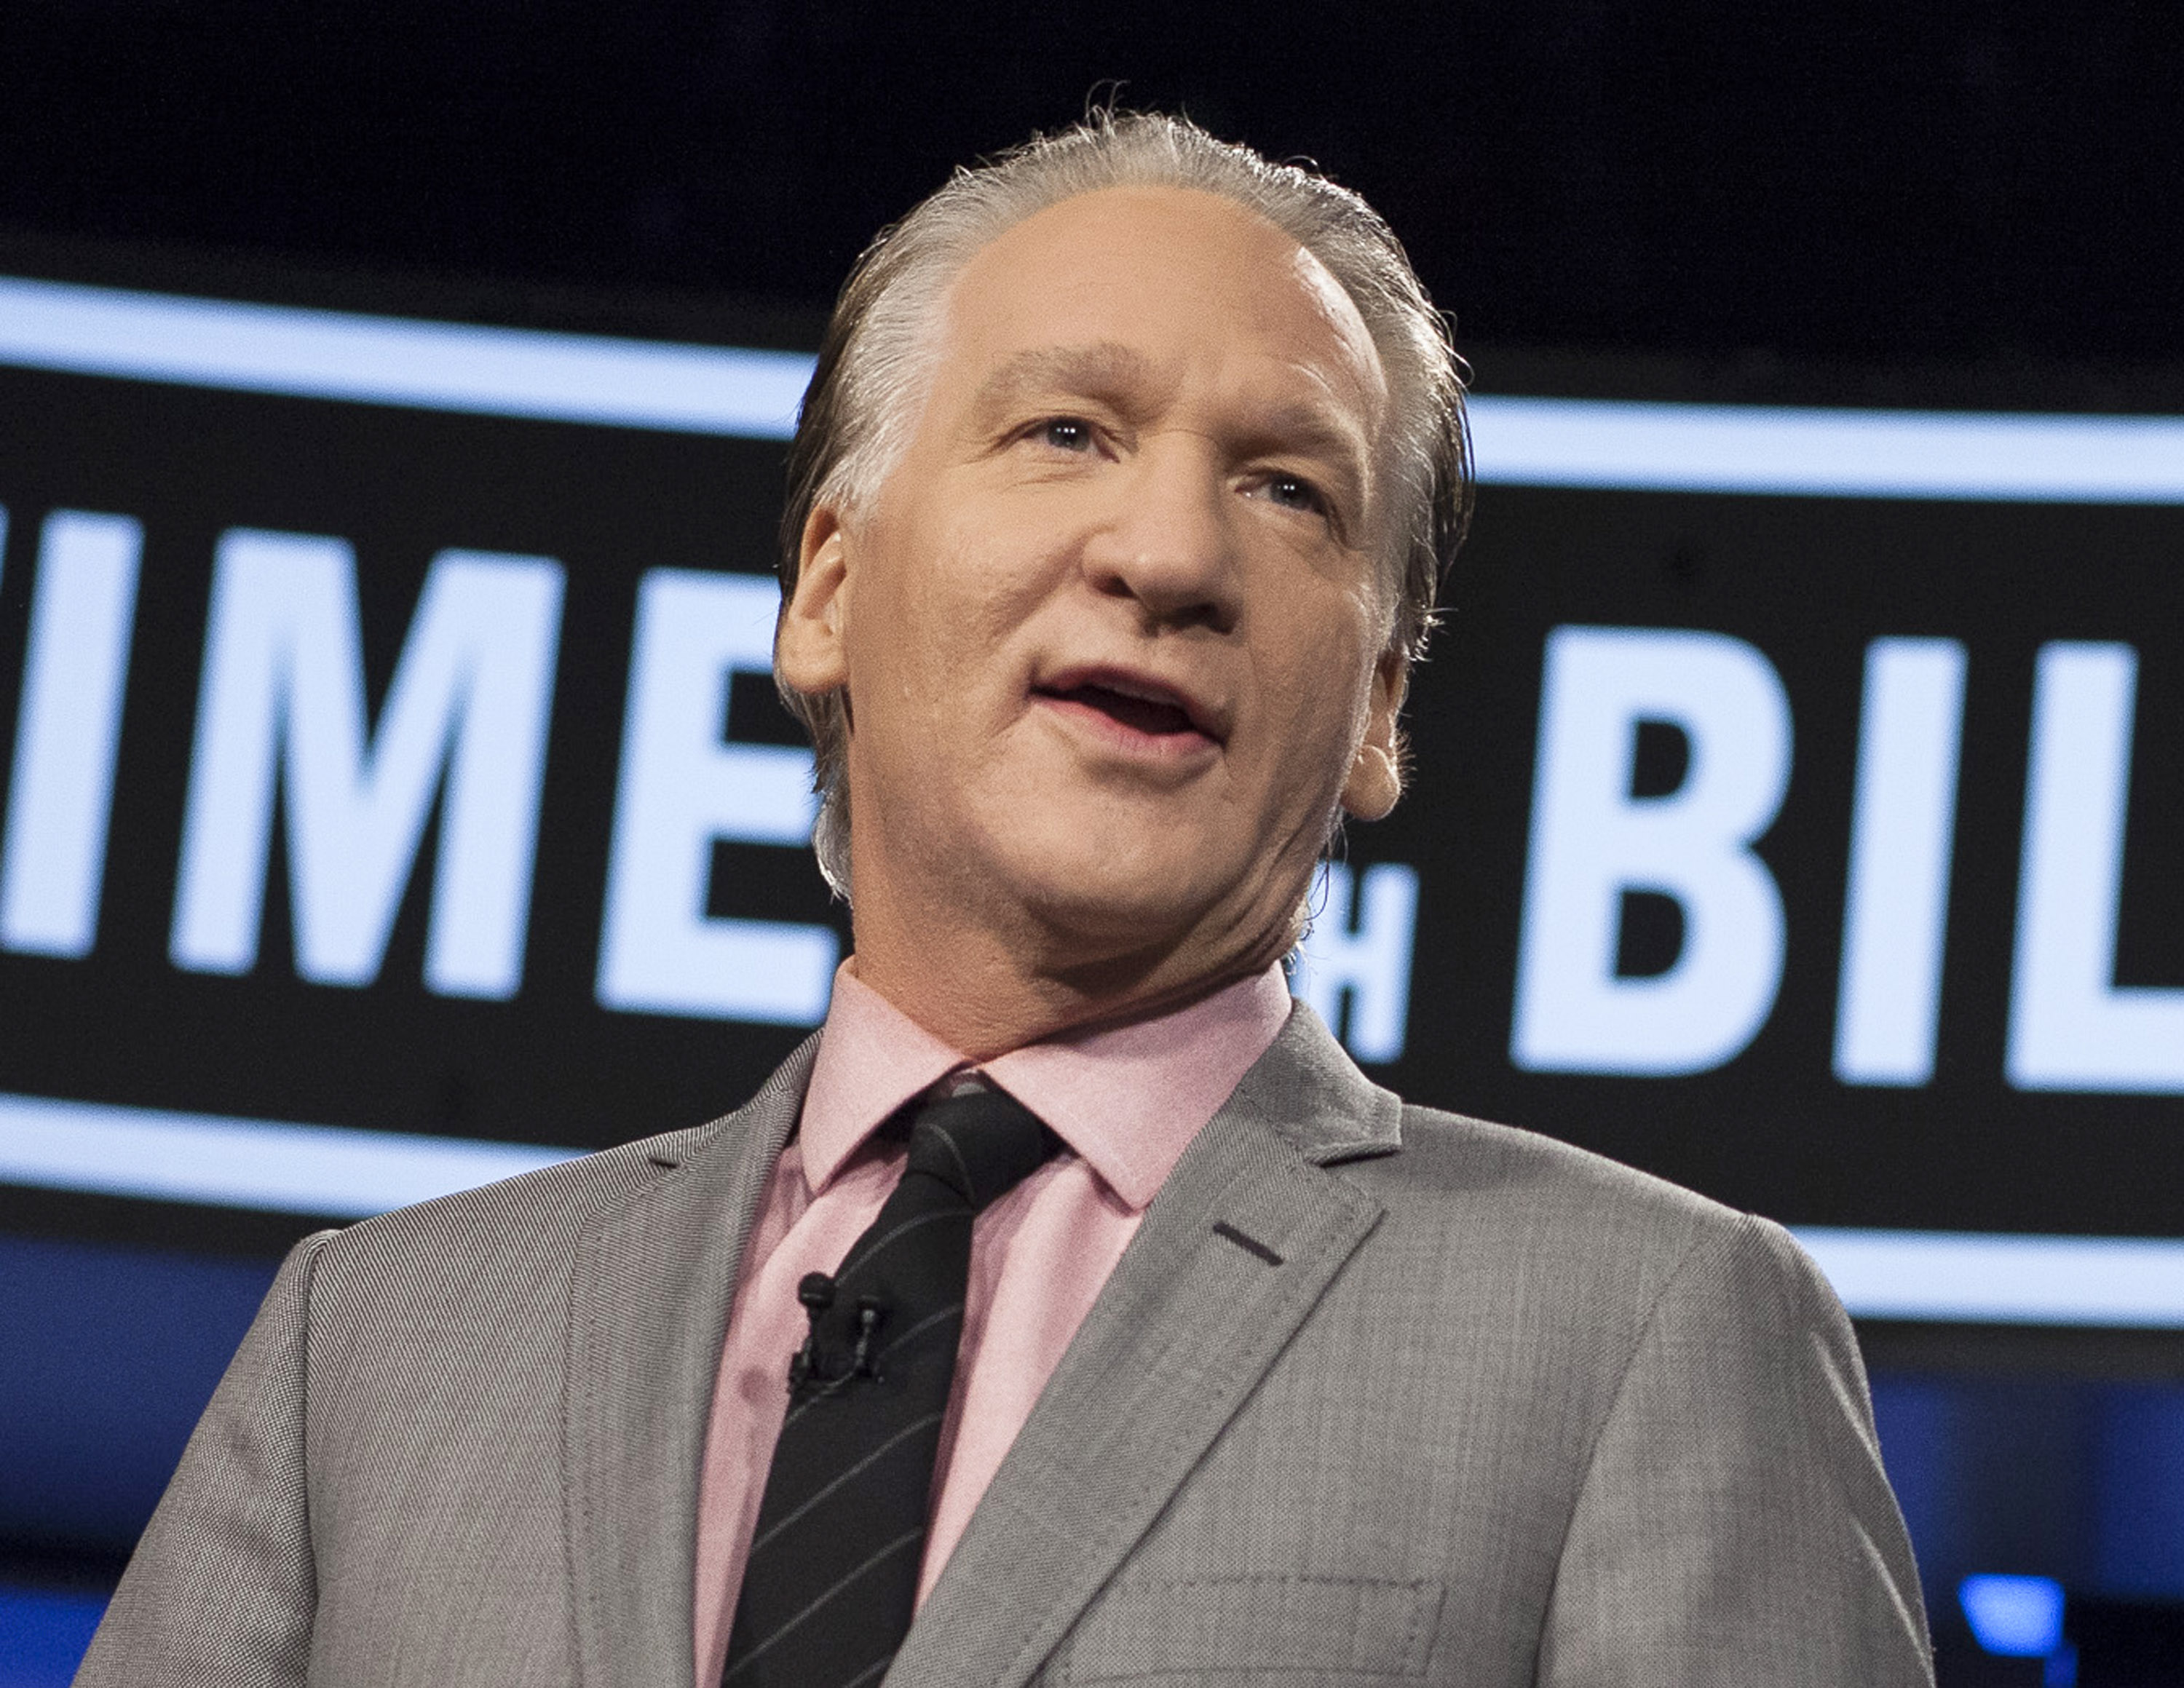 bill maher political correctness could cost democrats the bill maher political correctness could cost democrats the election washington times